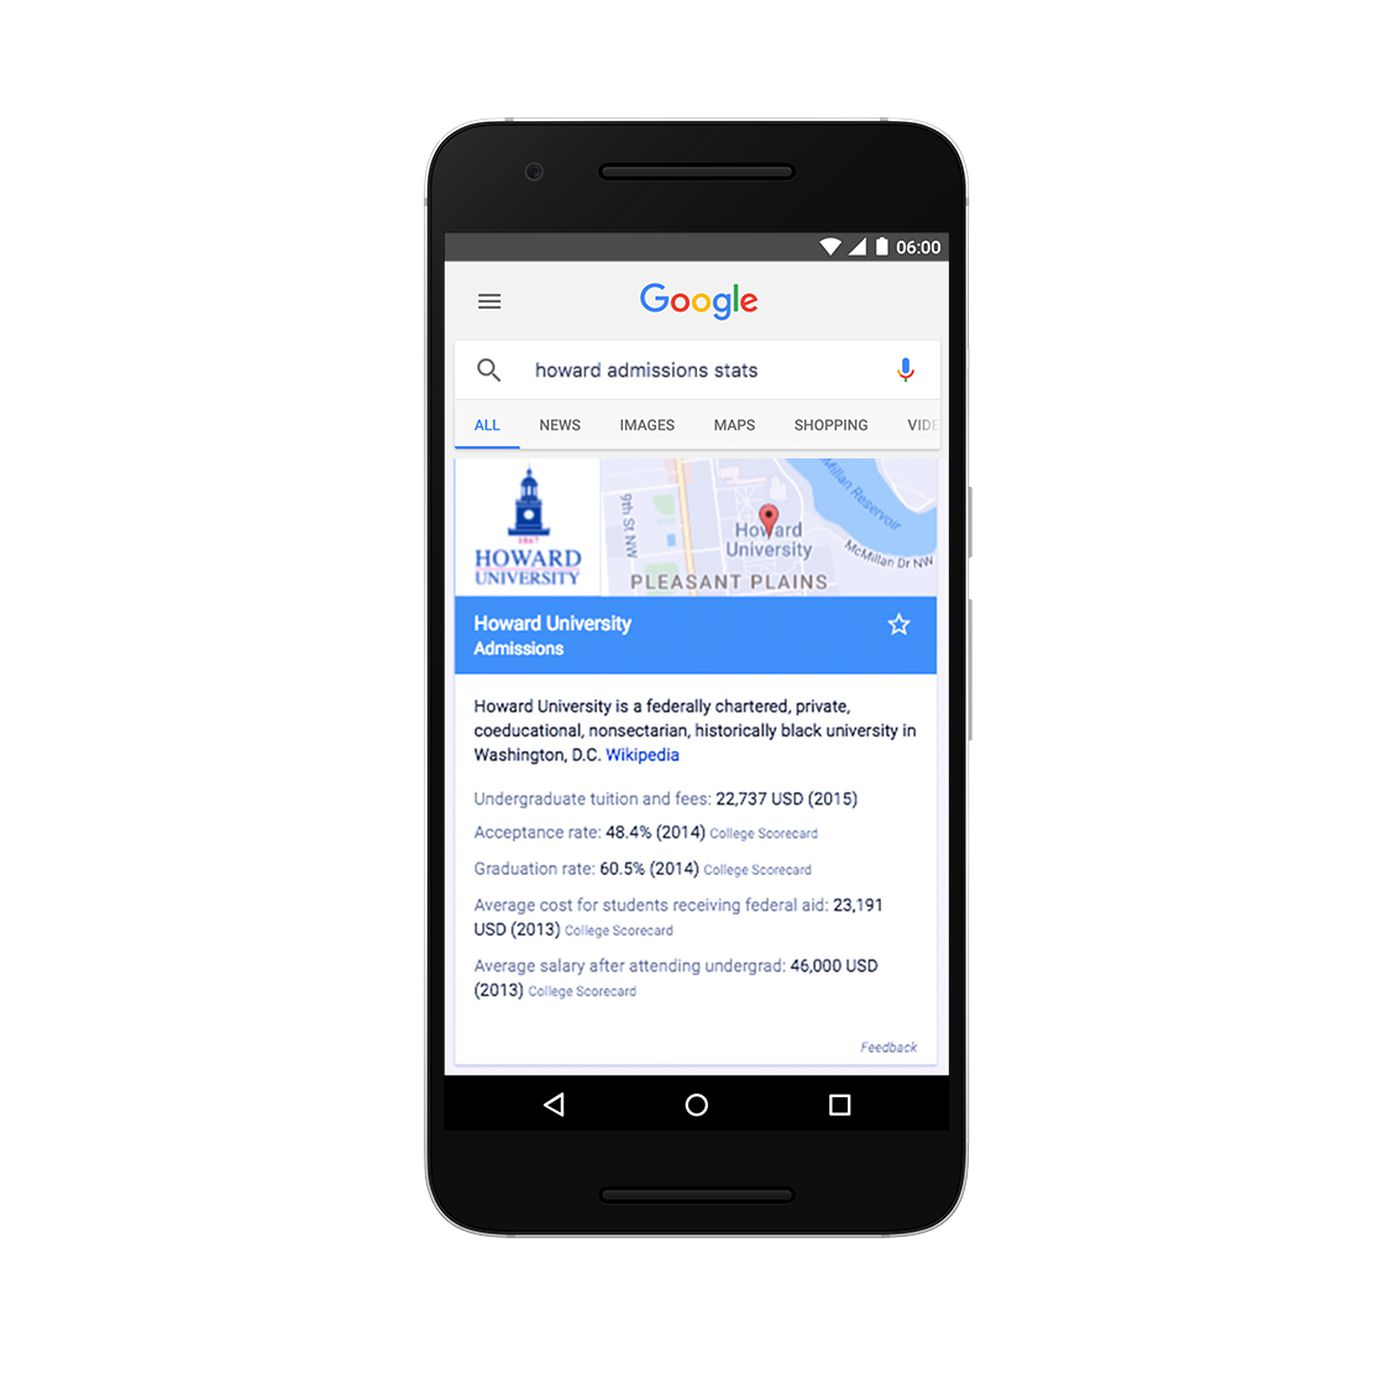 Google wants to educate students about universities right from